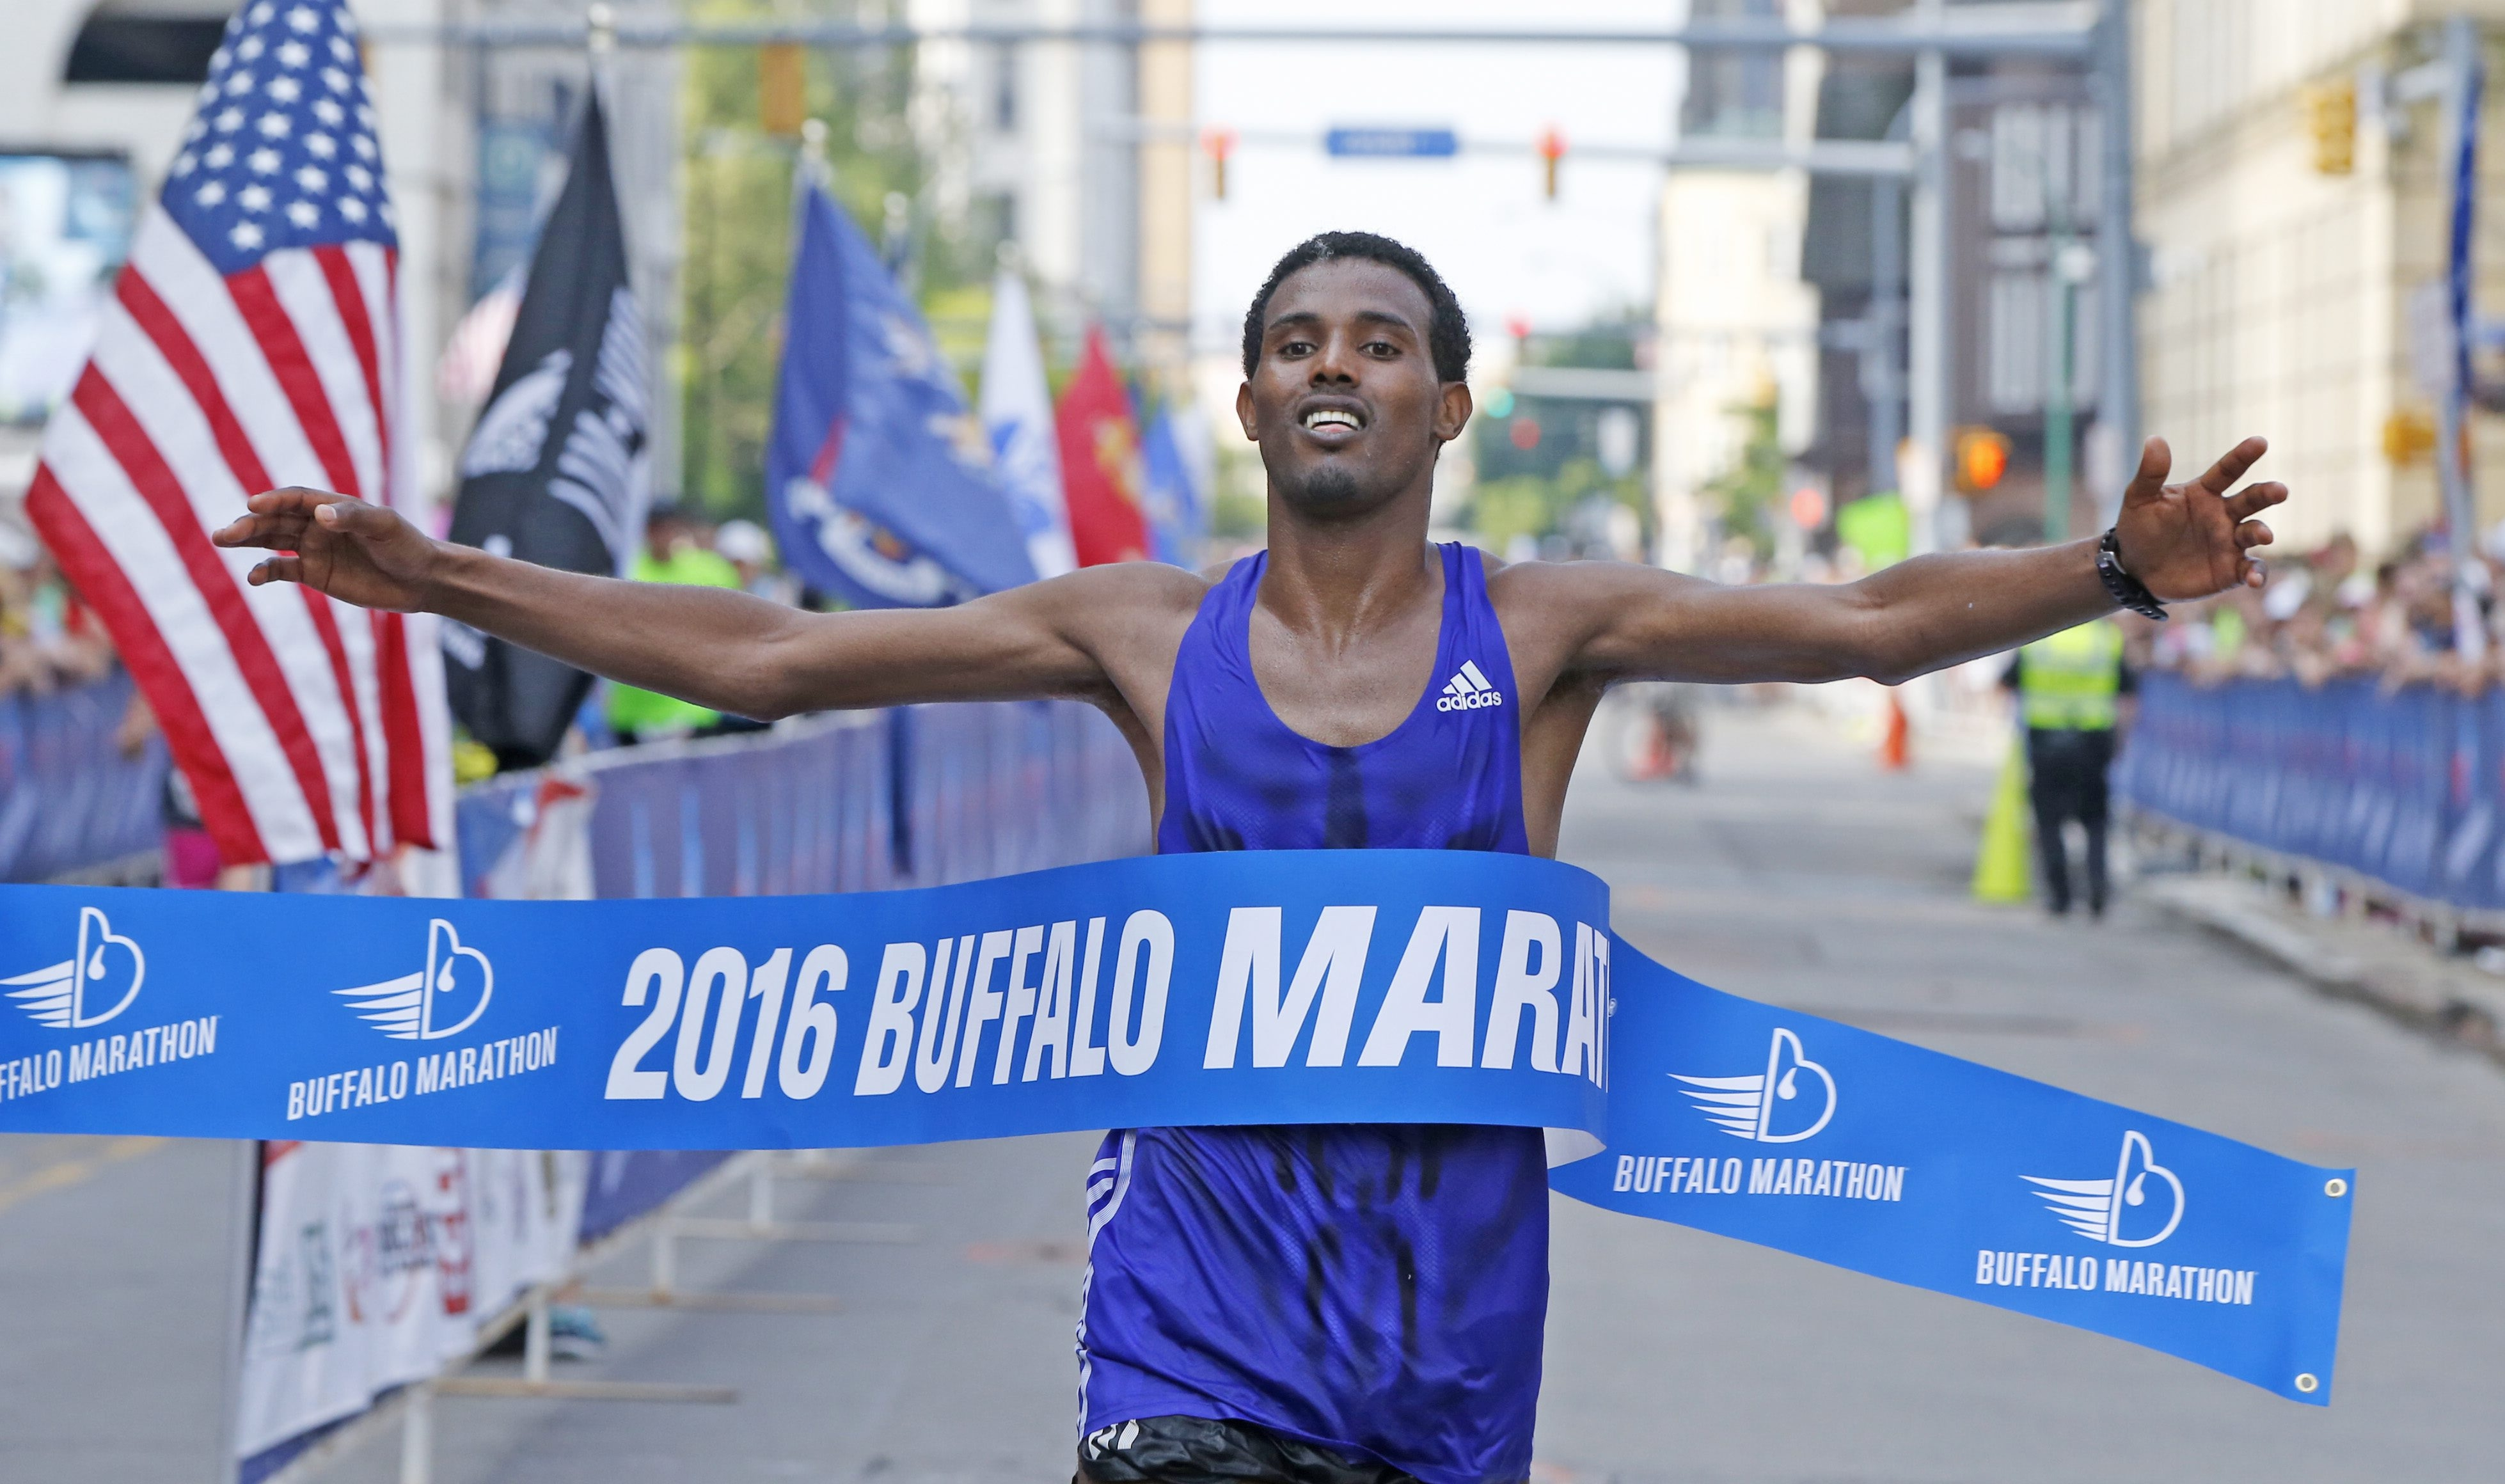 Running his first Buffalo Marathon, Senbeto Geneti Guteta of Ethiopia crosses the finish line with a time of 2 hours, 22 minutes, 50 seconds.